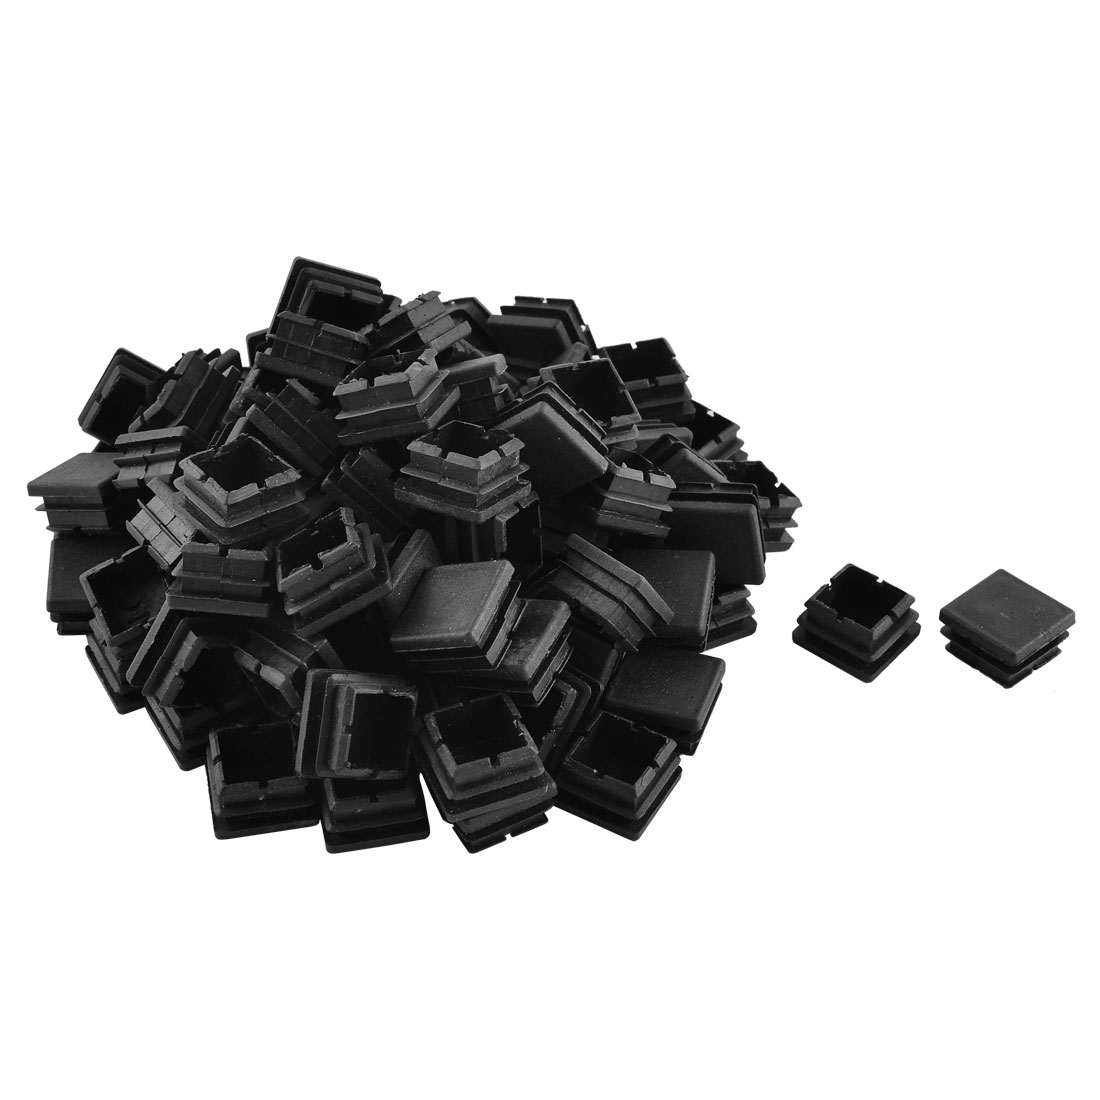 Home Plastic Square Shaped Furniture Table Chair Leg Foot Tube Insert Black 100 Pcs